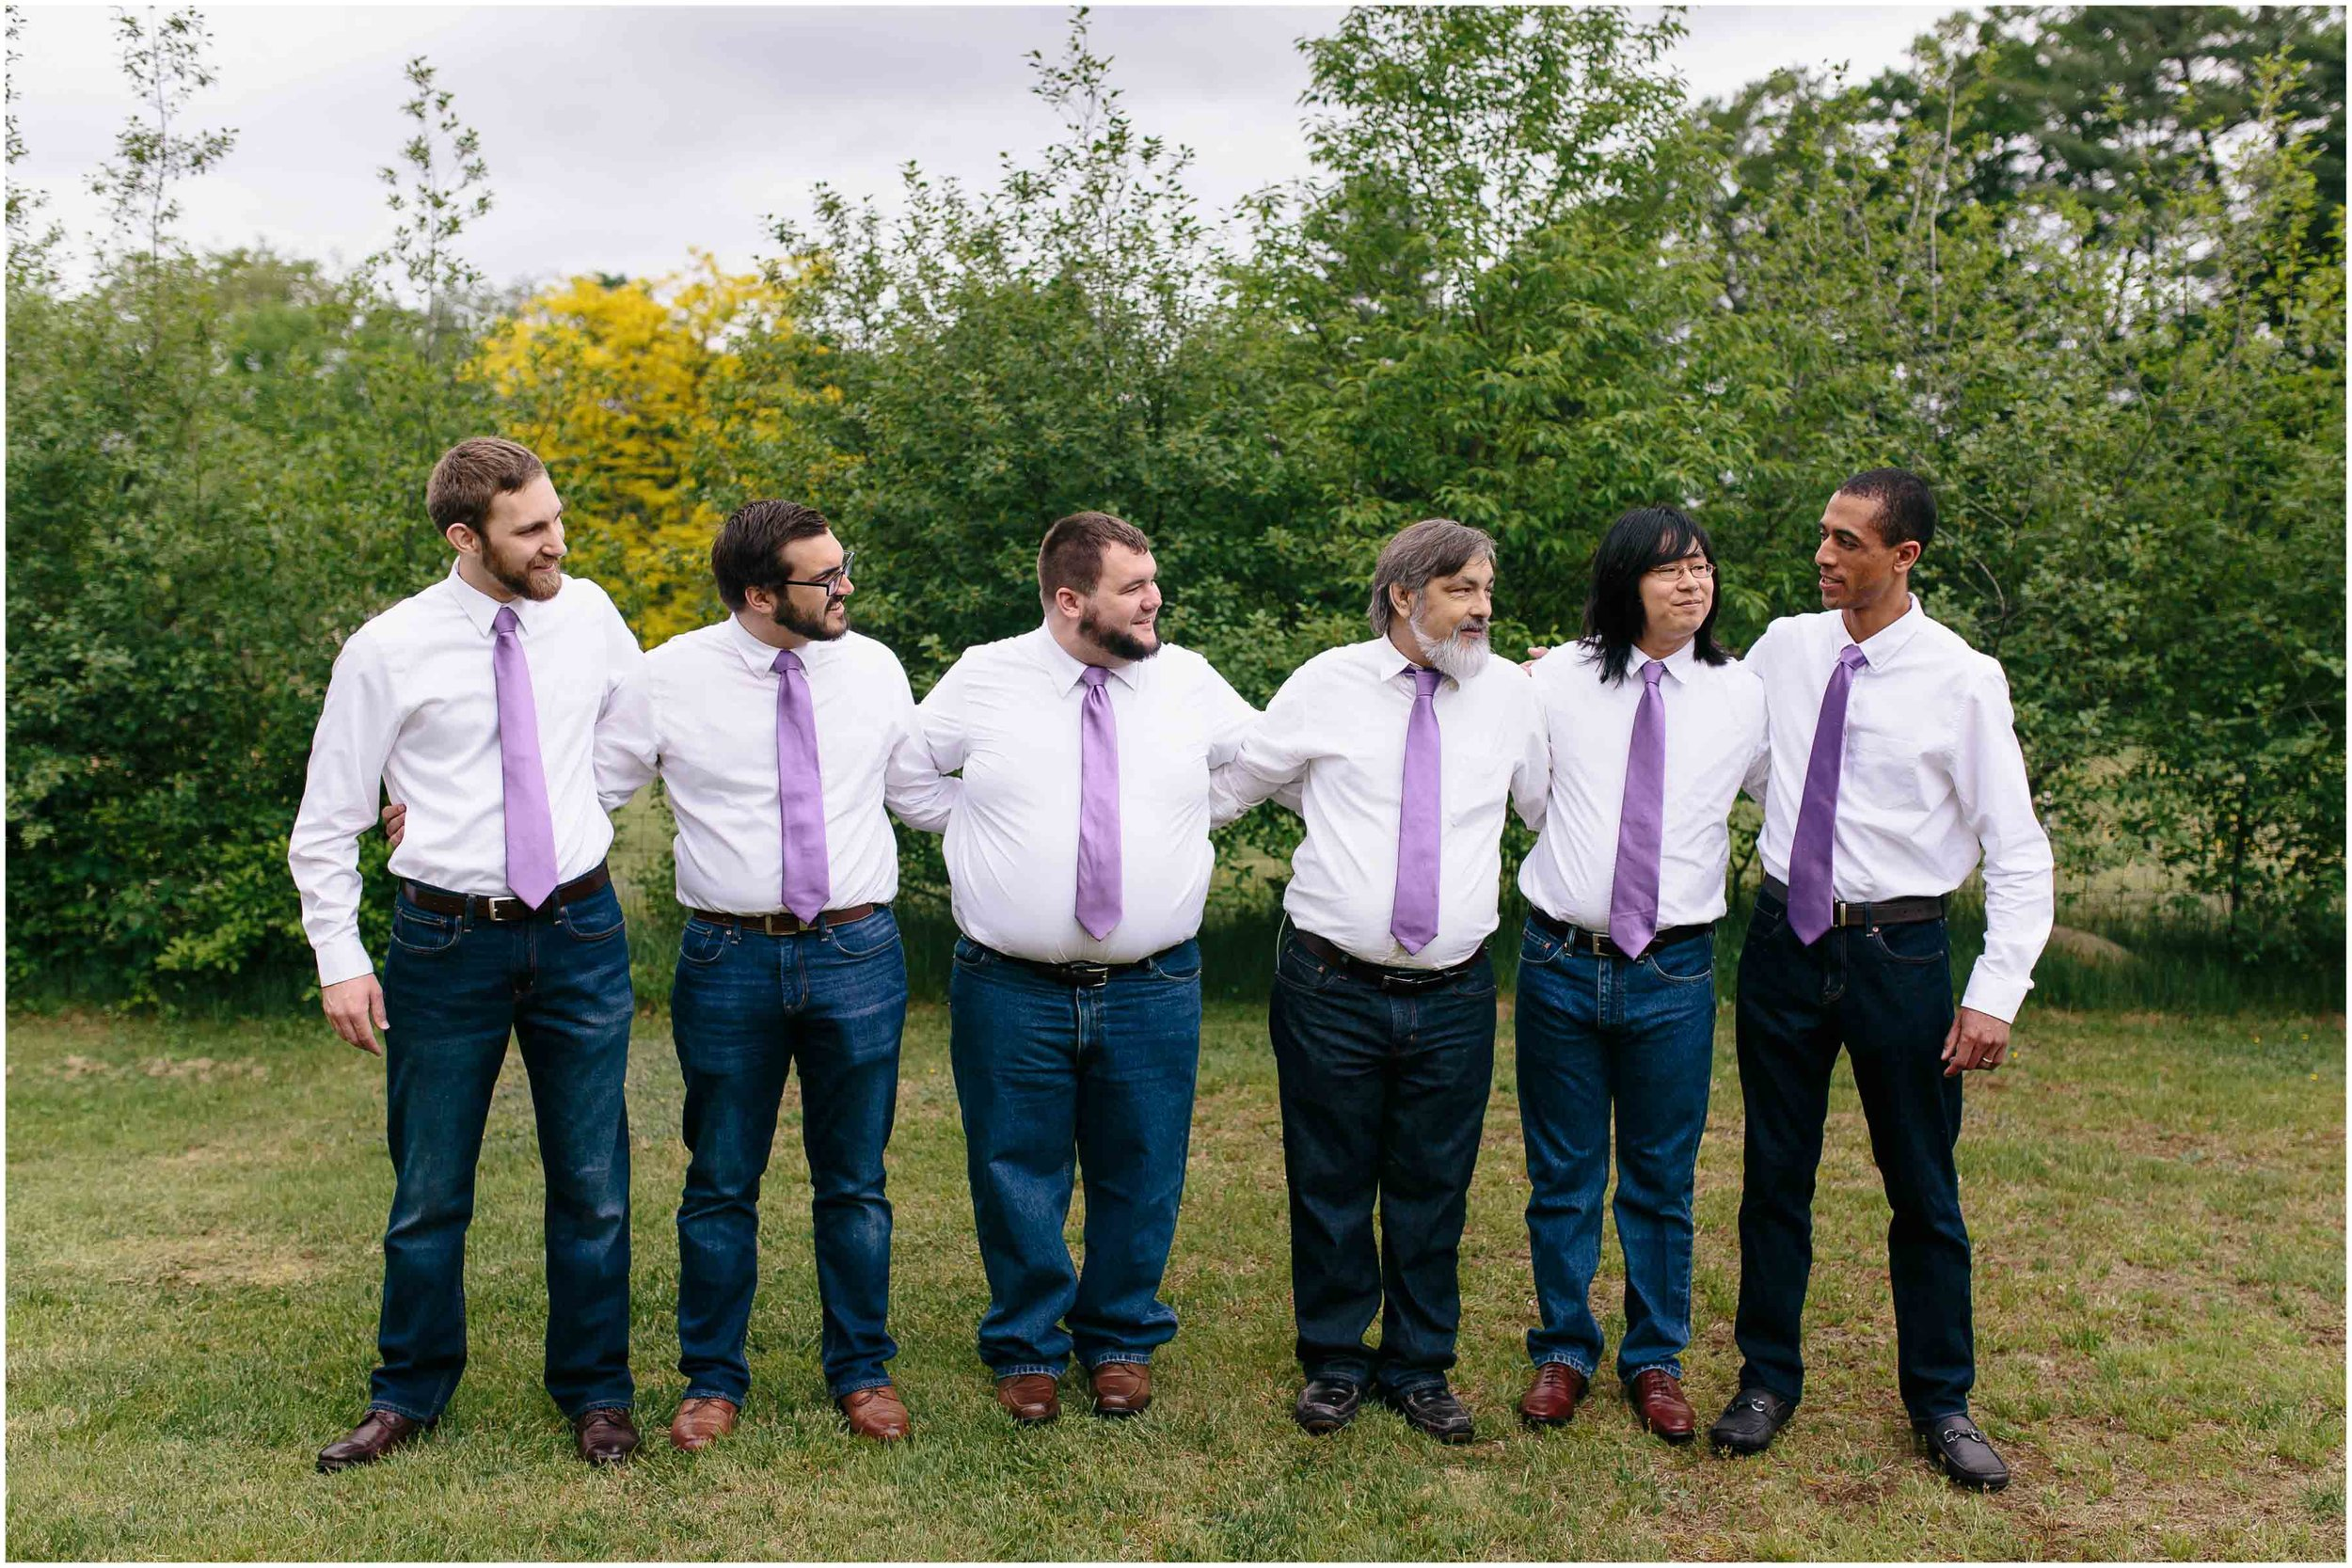 Charming Massachusetts countryside journalistic wedding by Ashleigh Laureen Photography - groom and groomsmen